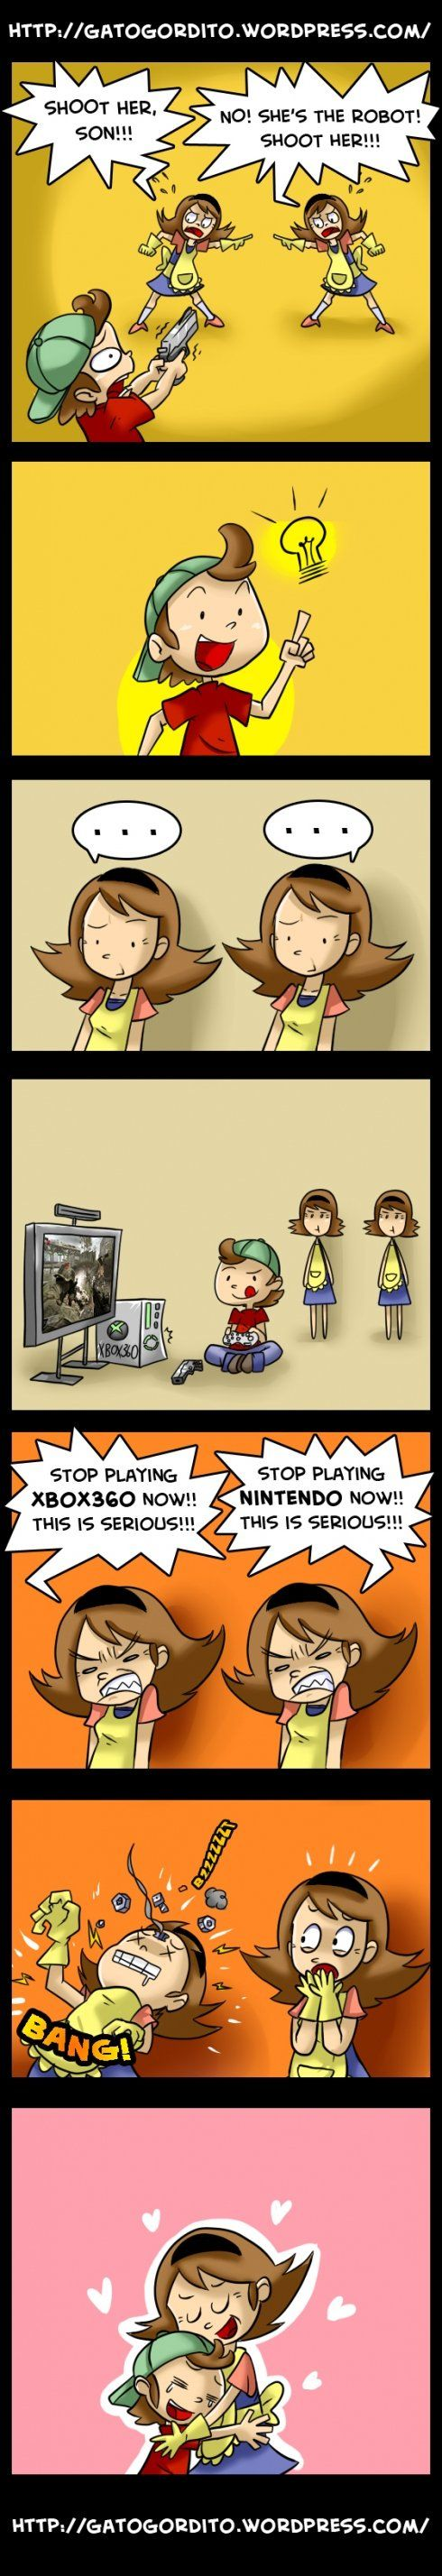 Moms always make video game mistakes.